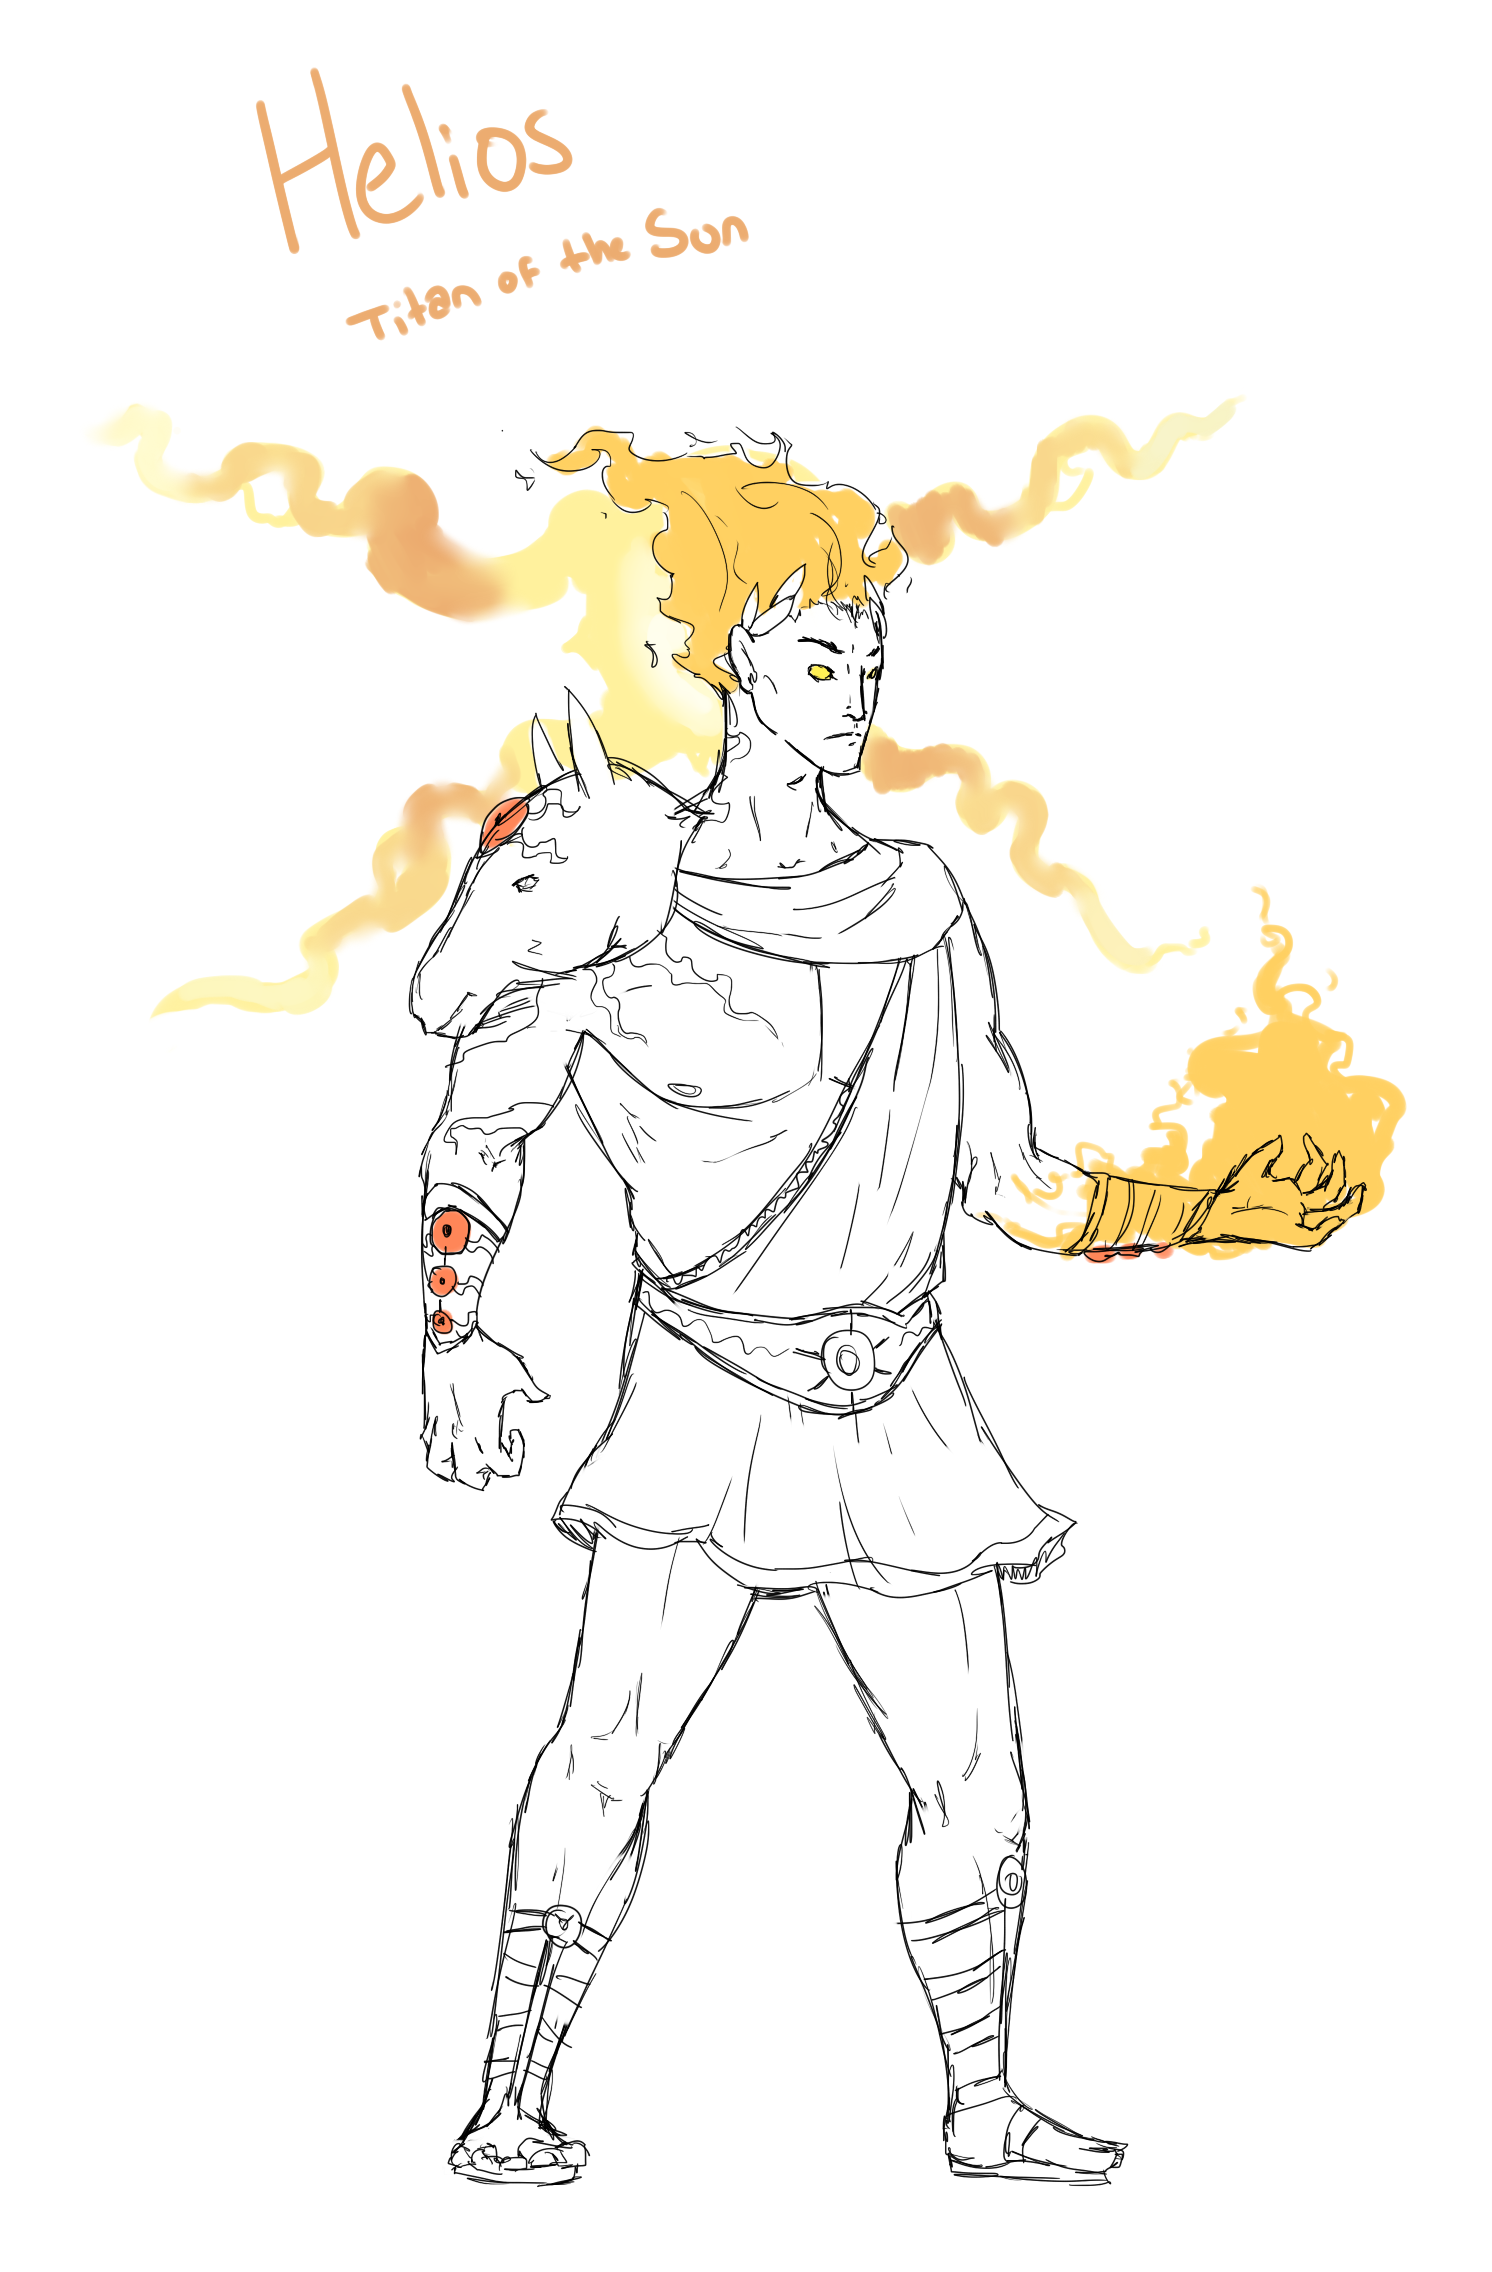 Helios Would Be A Bright Handsome Man With Flaming Hair And Clothed In Red Or Purple Golden Accented Armor The Dots All Over Him Are Eye Like Gems